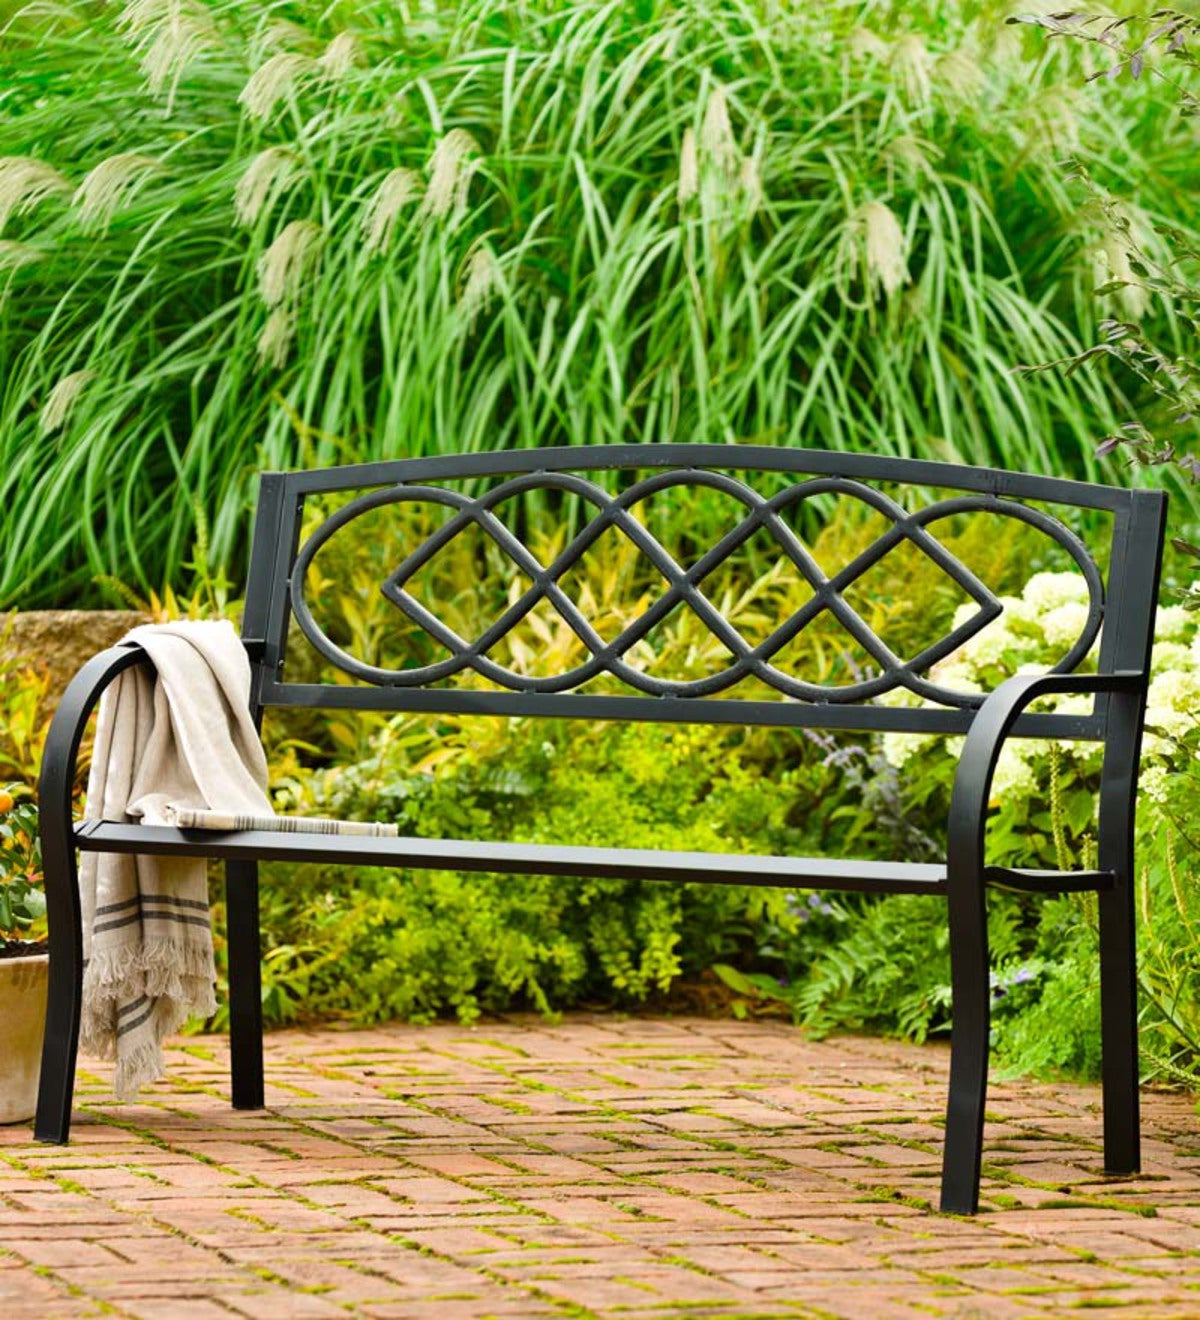 Celtic Knot Garden Bench Pertaining To Most Recent Celtic Knot Iron Garden Benches (View 5 of 30)